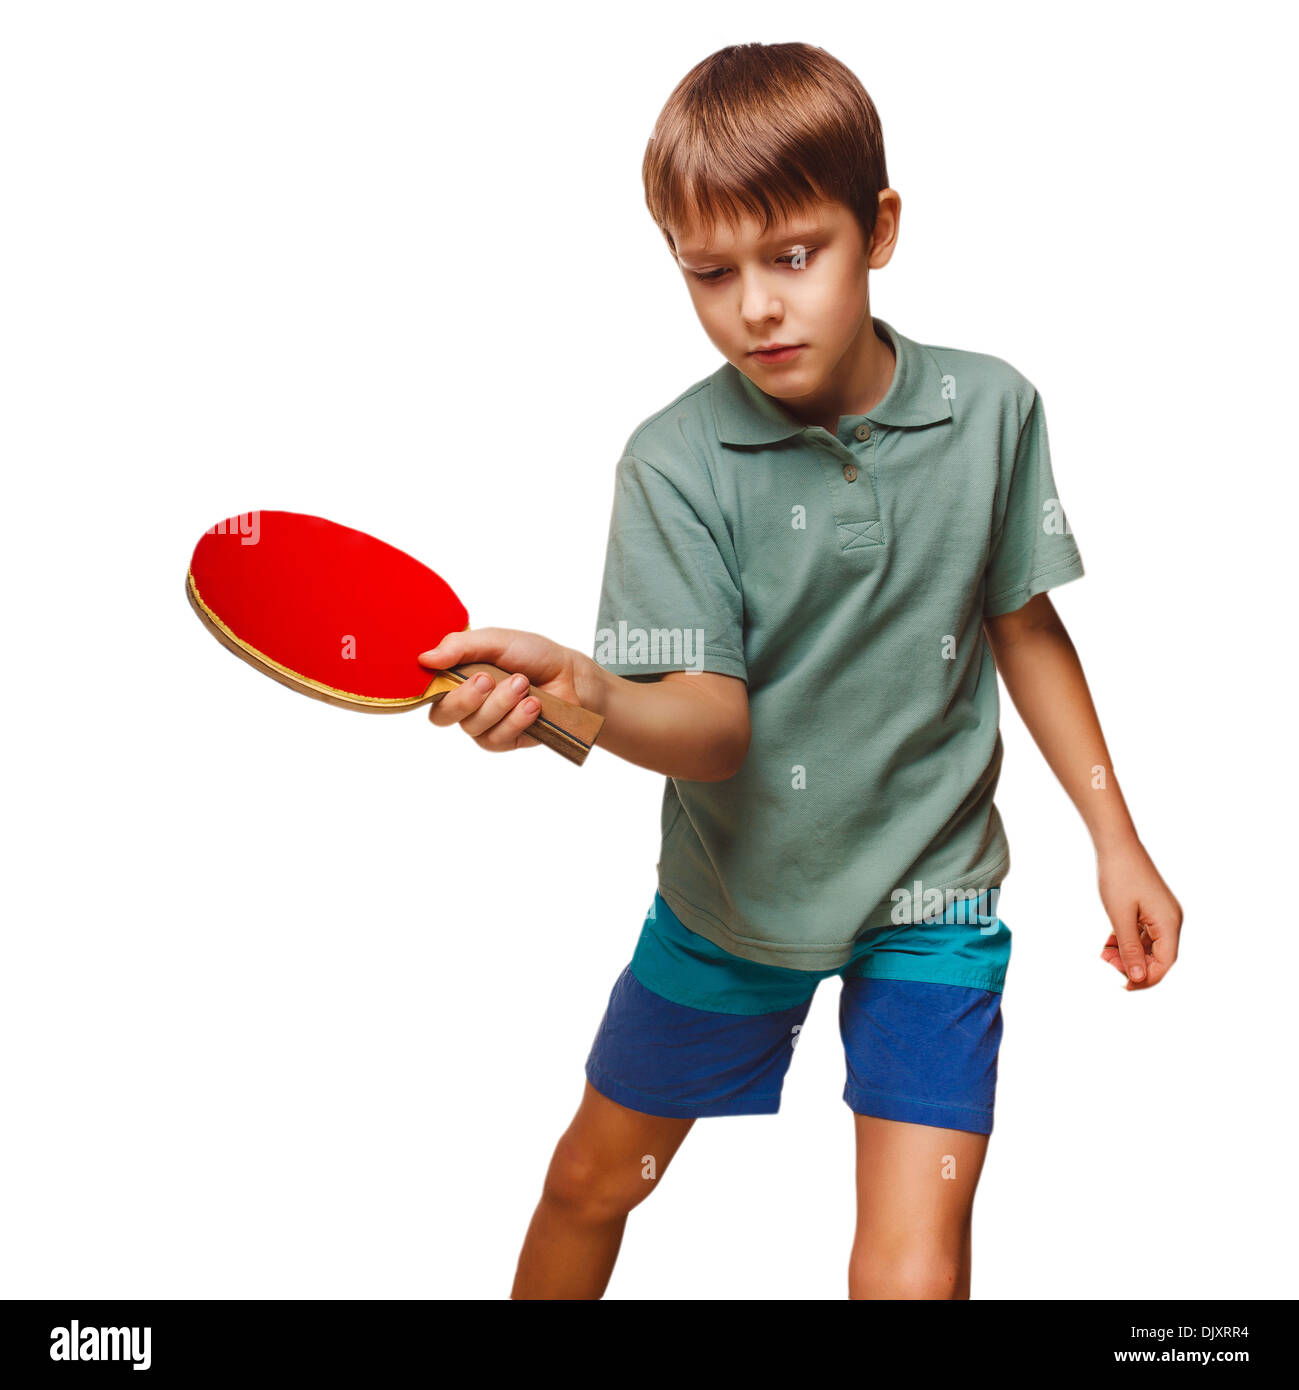 push boy blond man table tennis children playing forehand takes isolated on white background - Stock Image